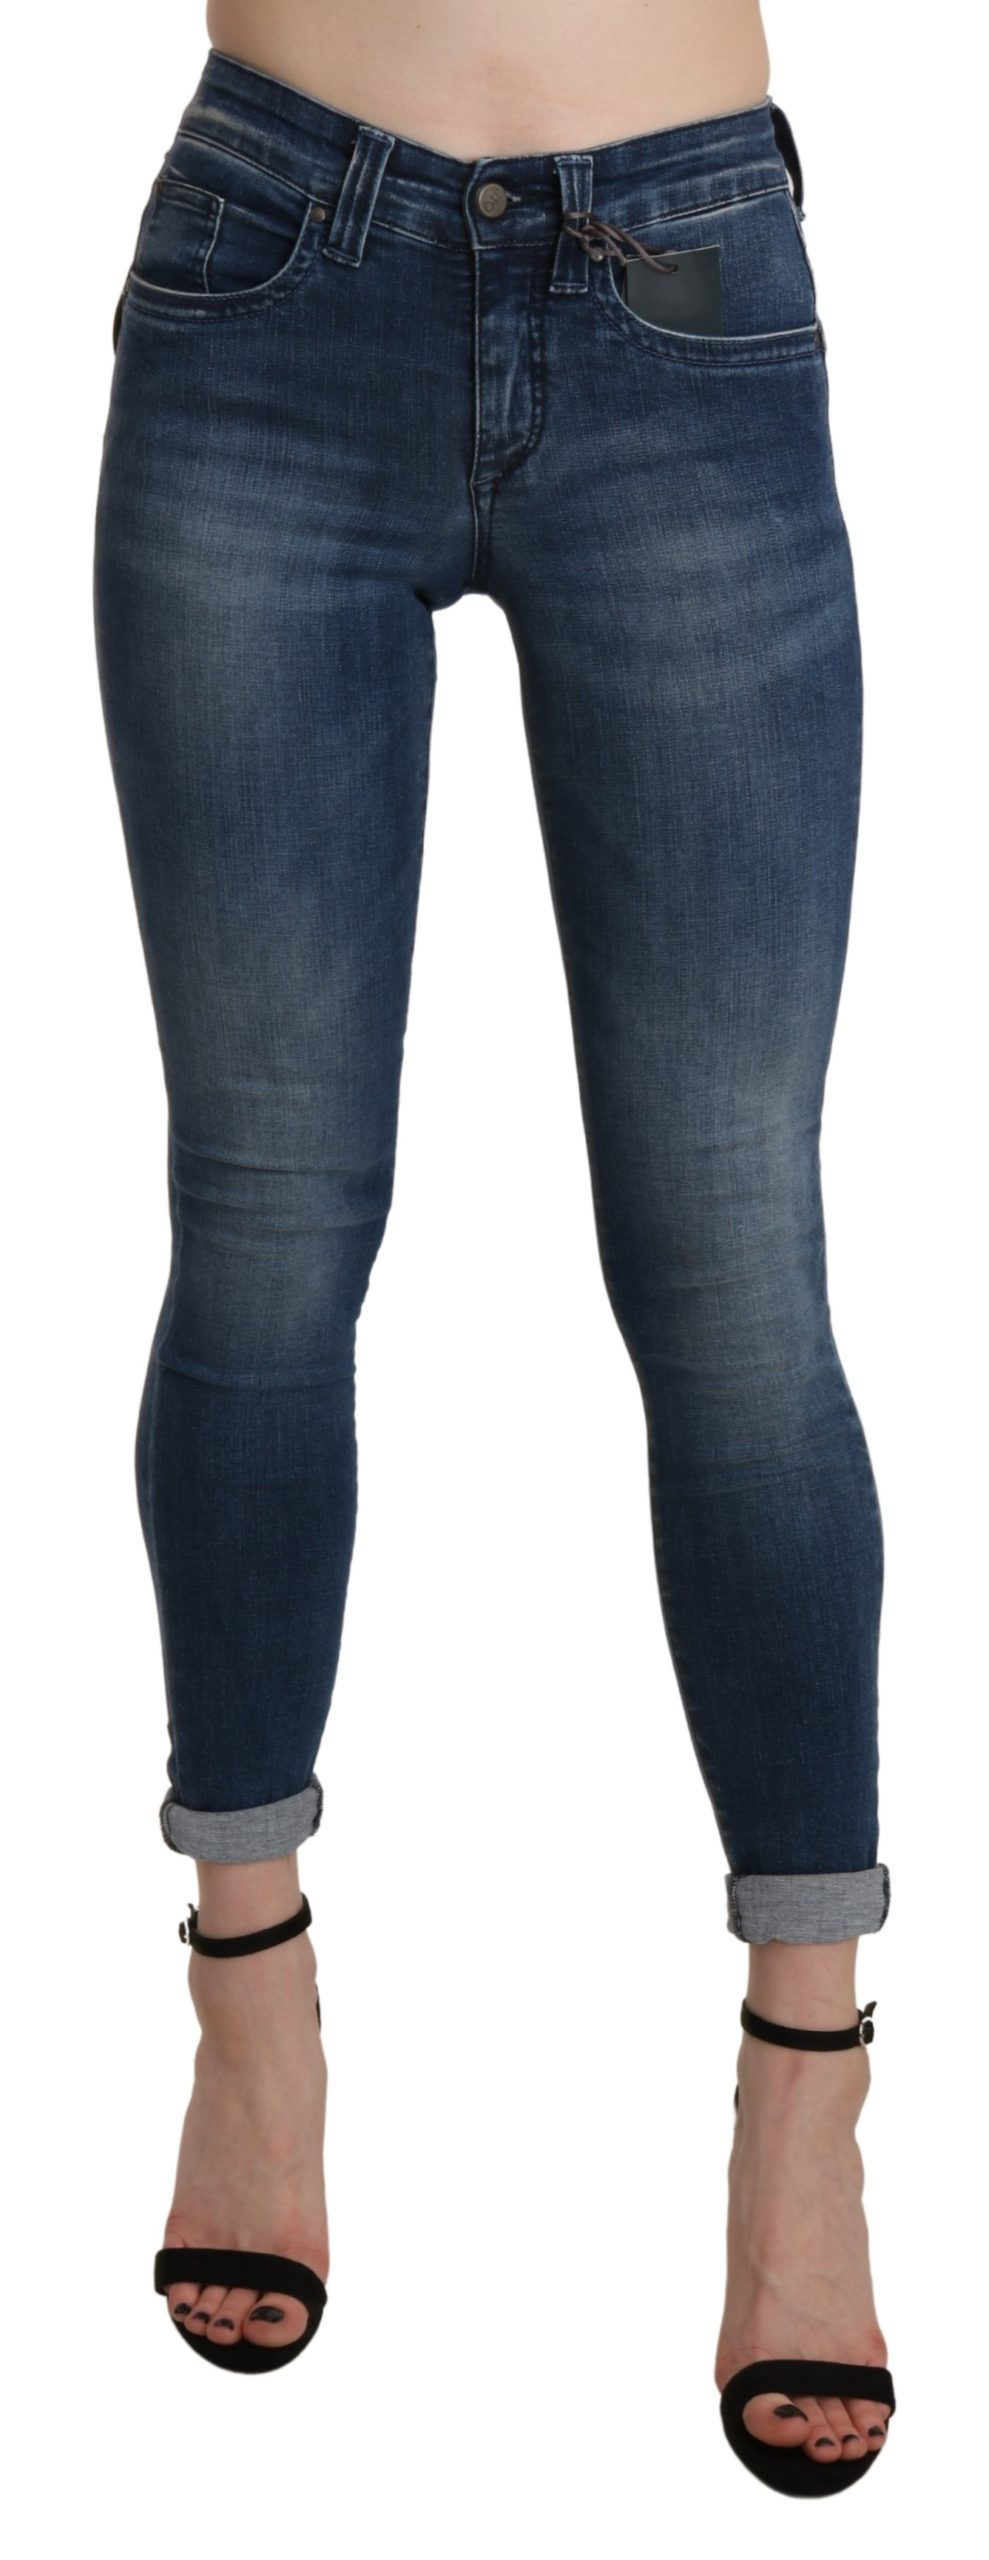 Blue Washed High Waist Skinny Cropped Cotton Jeans - W28